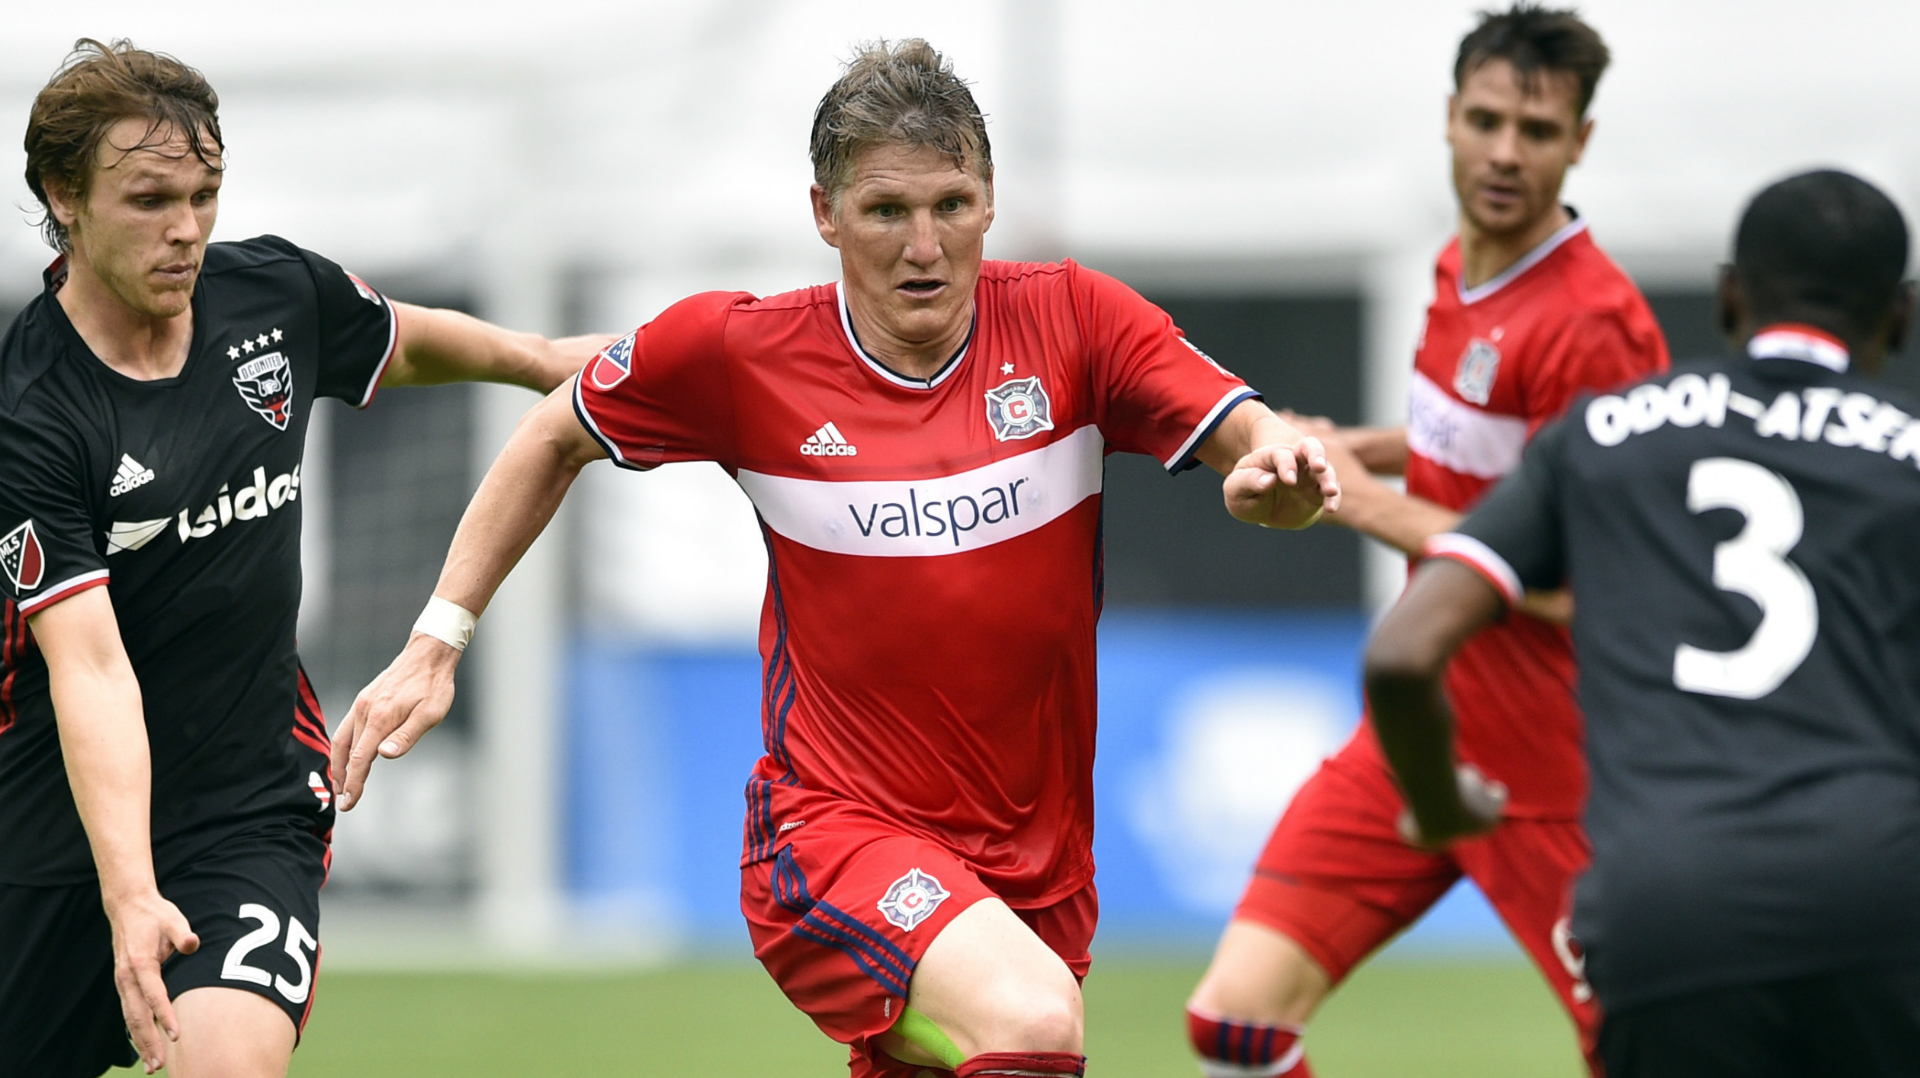 Bastian Schweinsteiger digs deep for Chicago Fire in return to